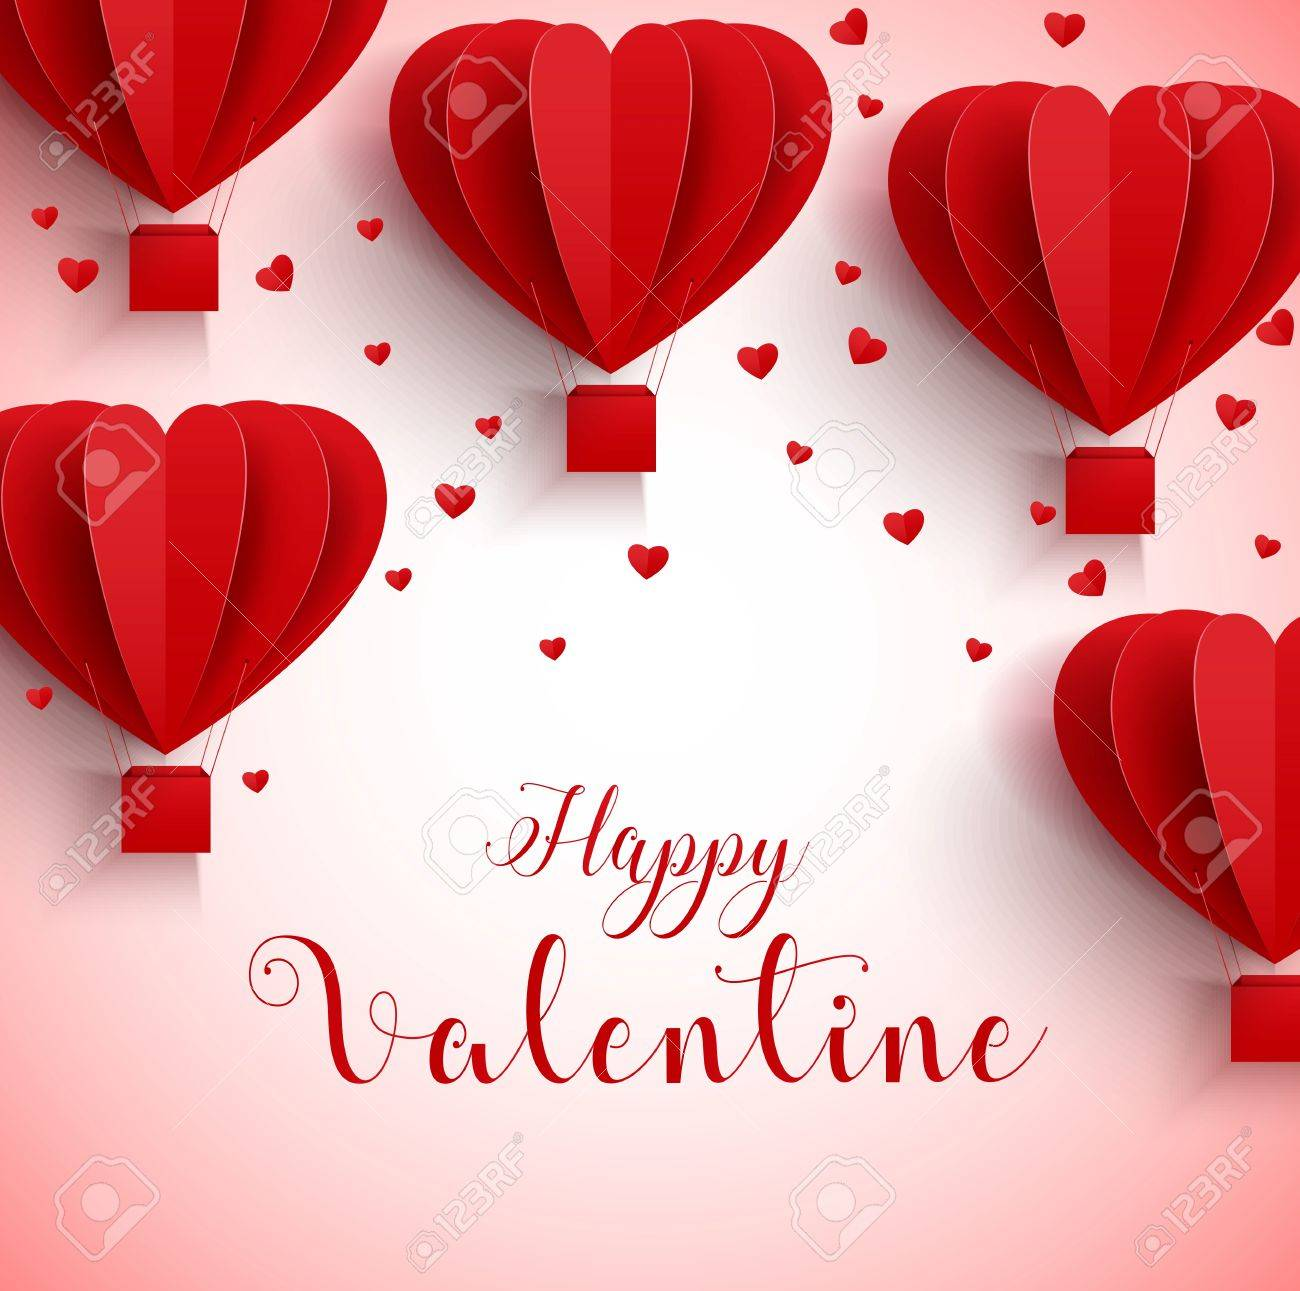 Happy Valentines Day Greetings Card With Realistic Paper Cut Stock